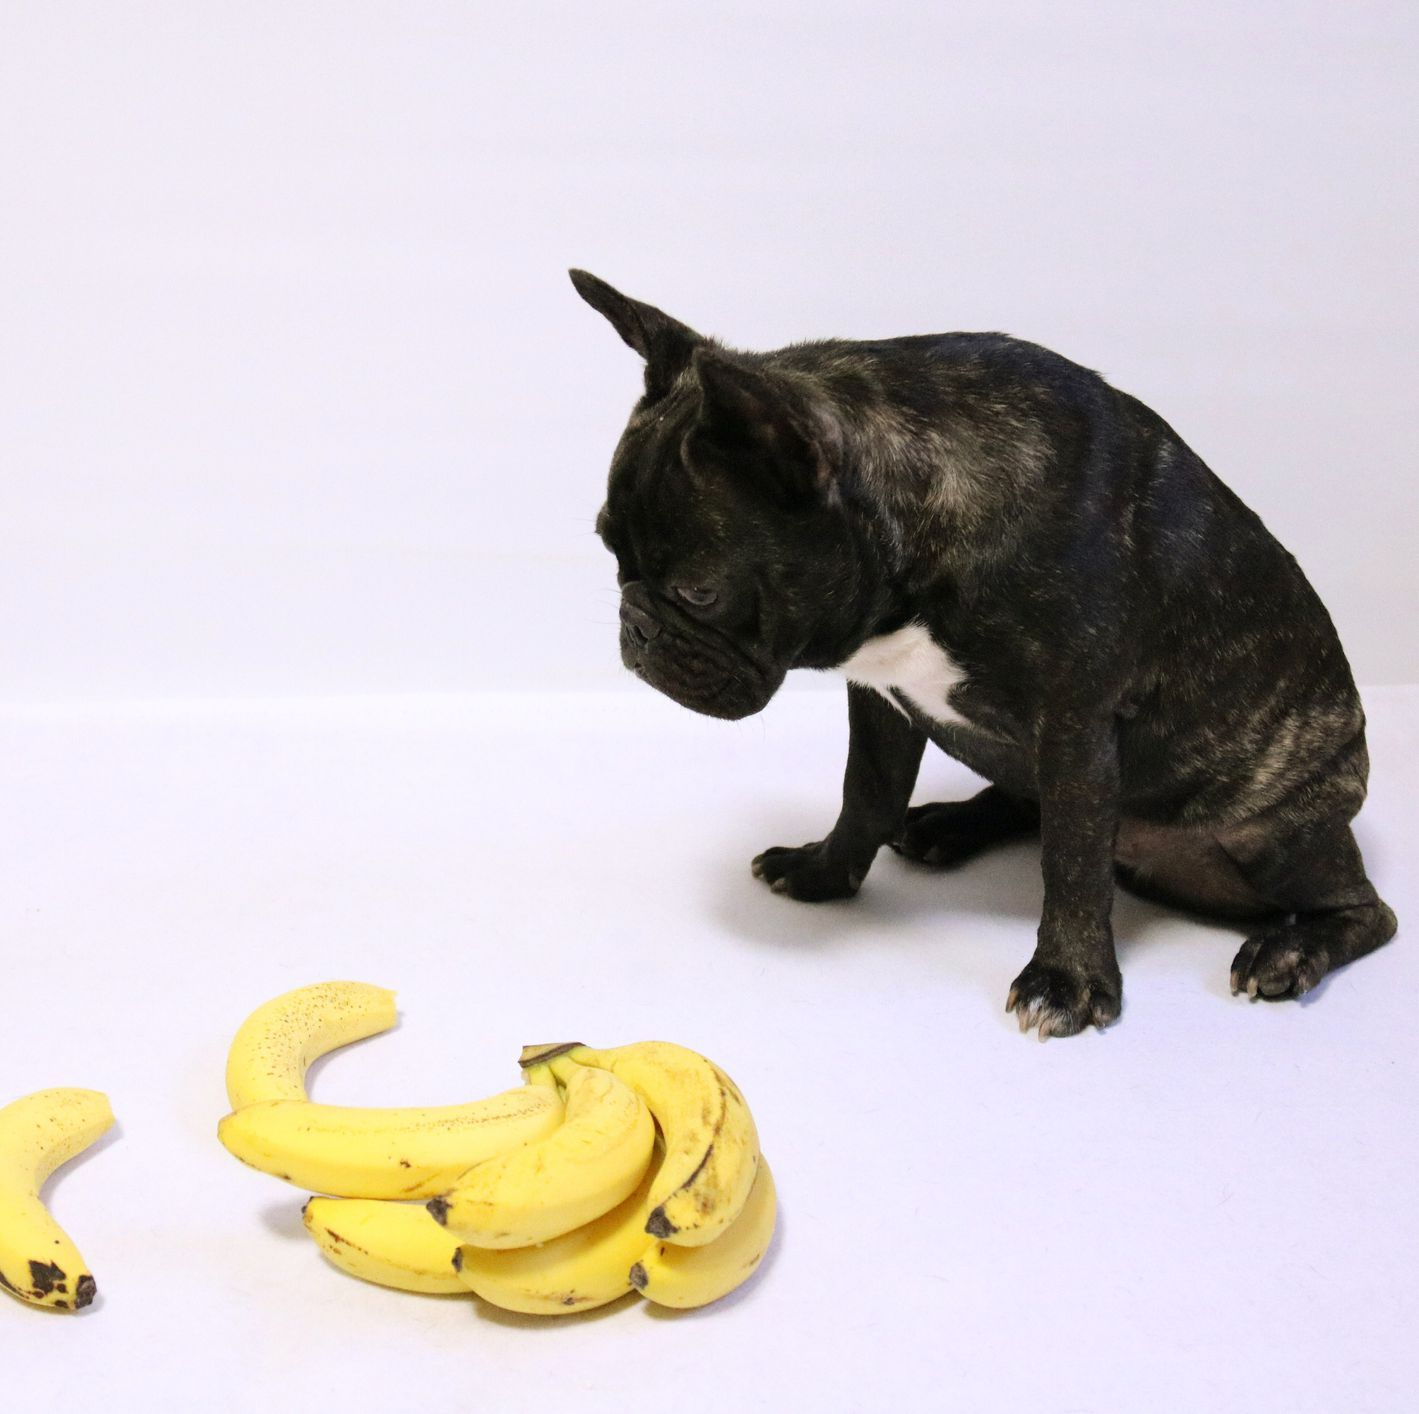 Bananas For Dogs It May Not Be The Worst Thing Bananas For Dogs